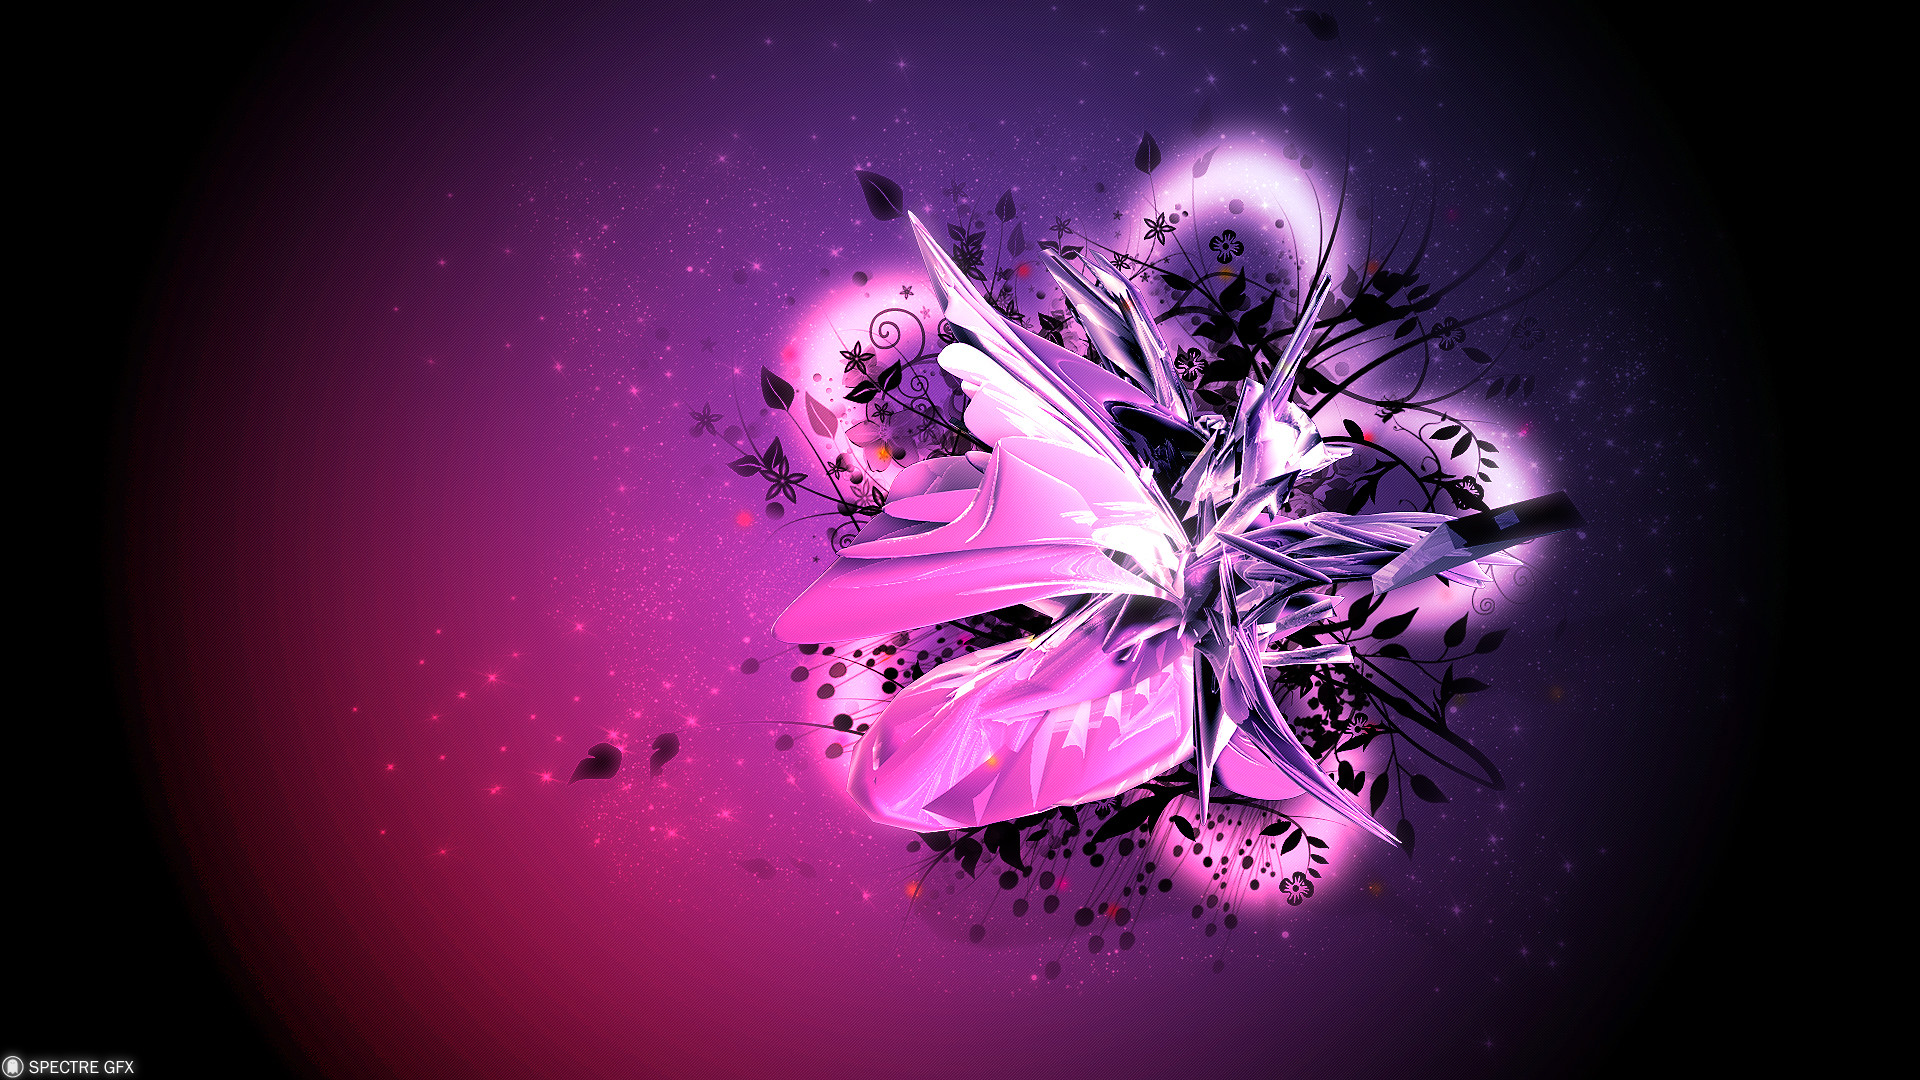 1920x1080 Cool 3d Abstract Widescreen Hd Wallpaper Amazing Wallpaperz Black And  Purple Wallpapers For Laptops